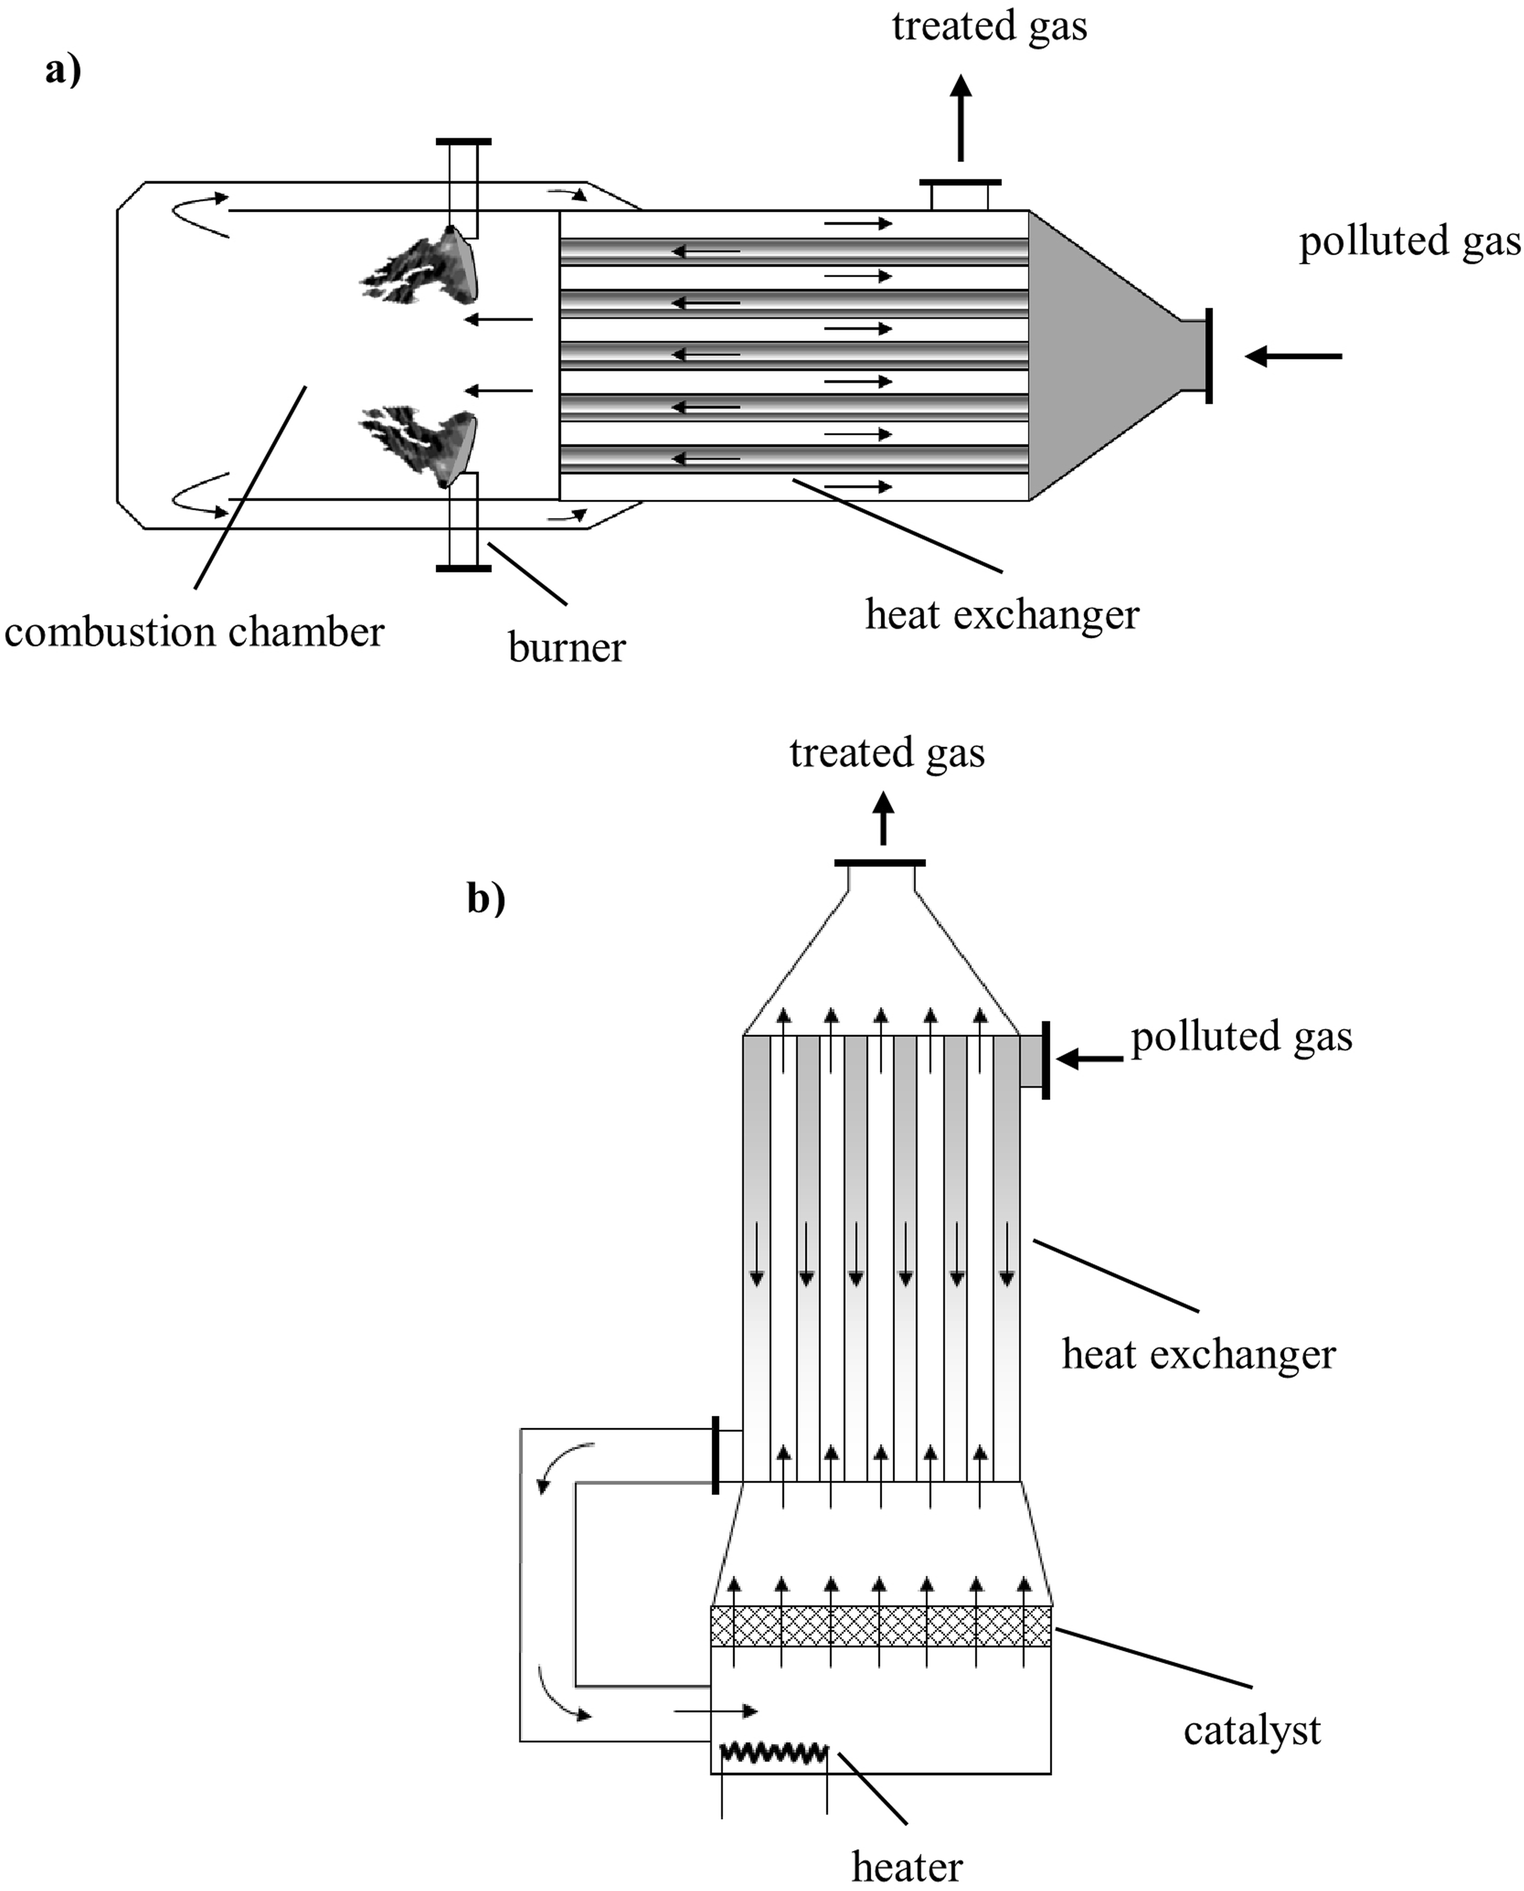 Technologies for deodorization of malodorous gases